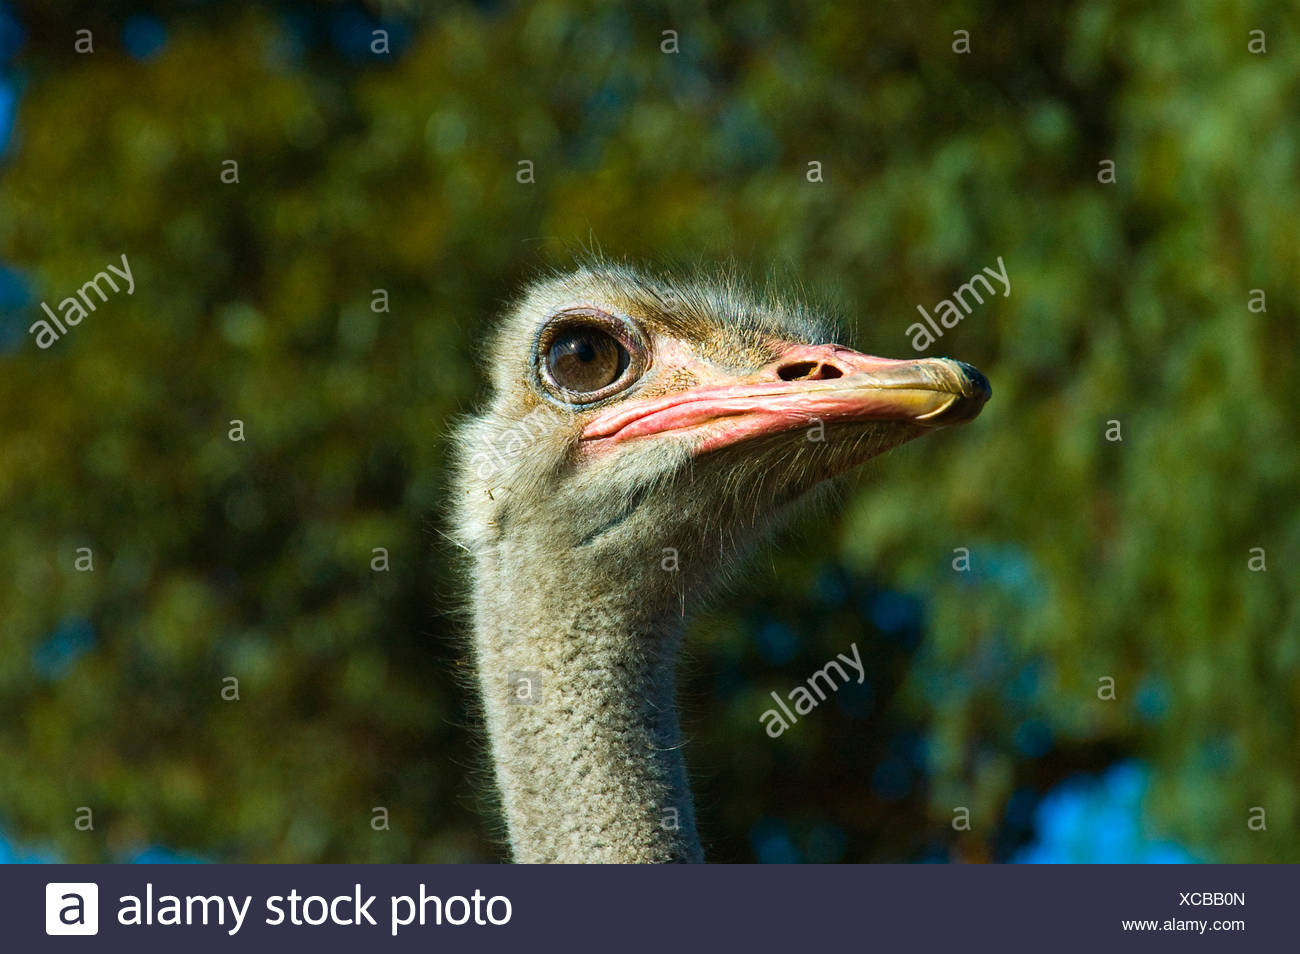 Ostrich (Struthio camelus), portrait, South Africa Stock Photo